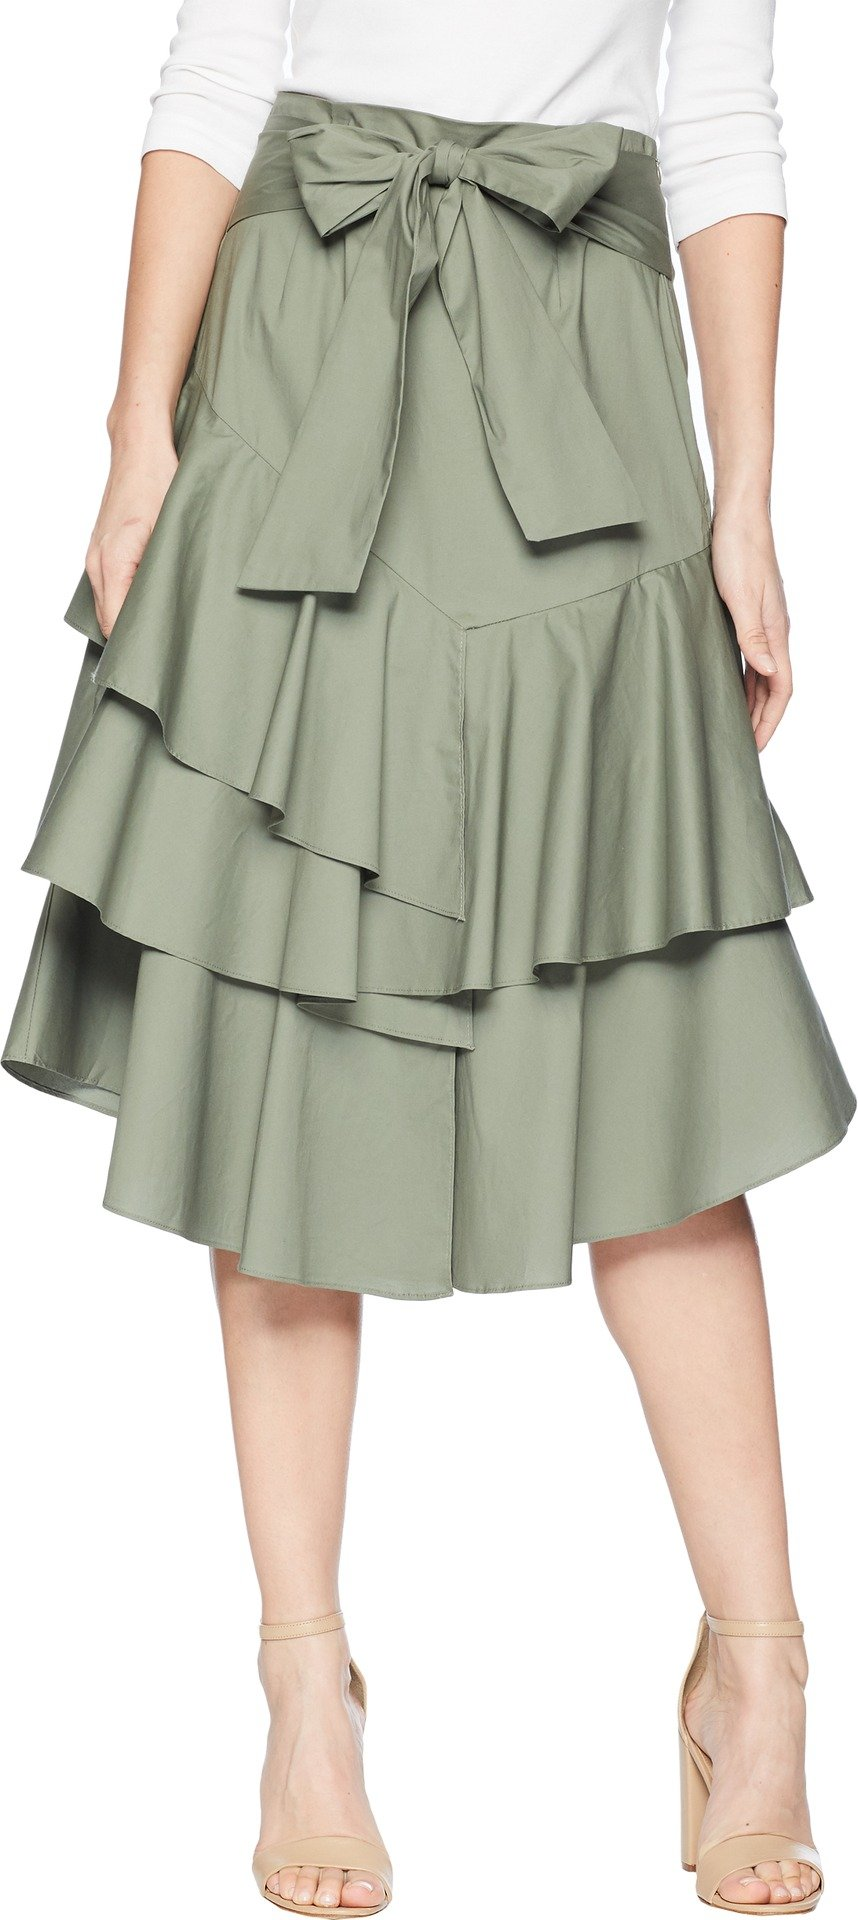 Vince Camuto Womens Tiered Ruffle Belted Poplin Skirt Camo Green 6 One Size